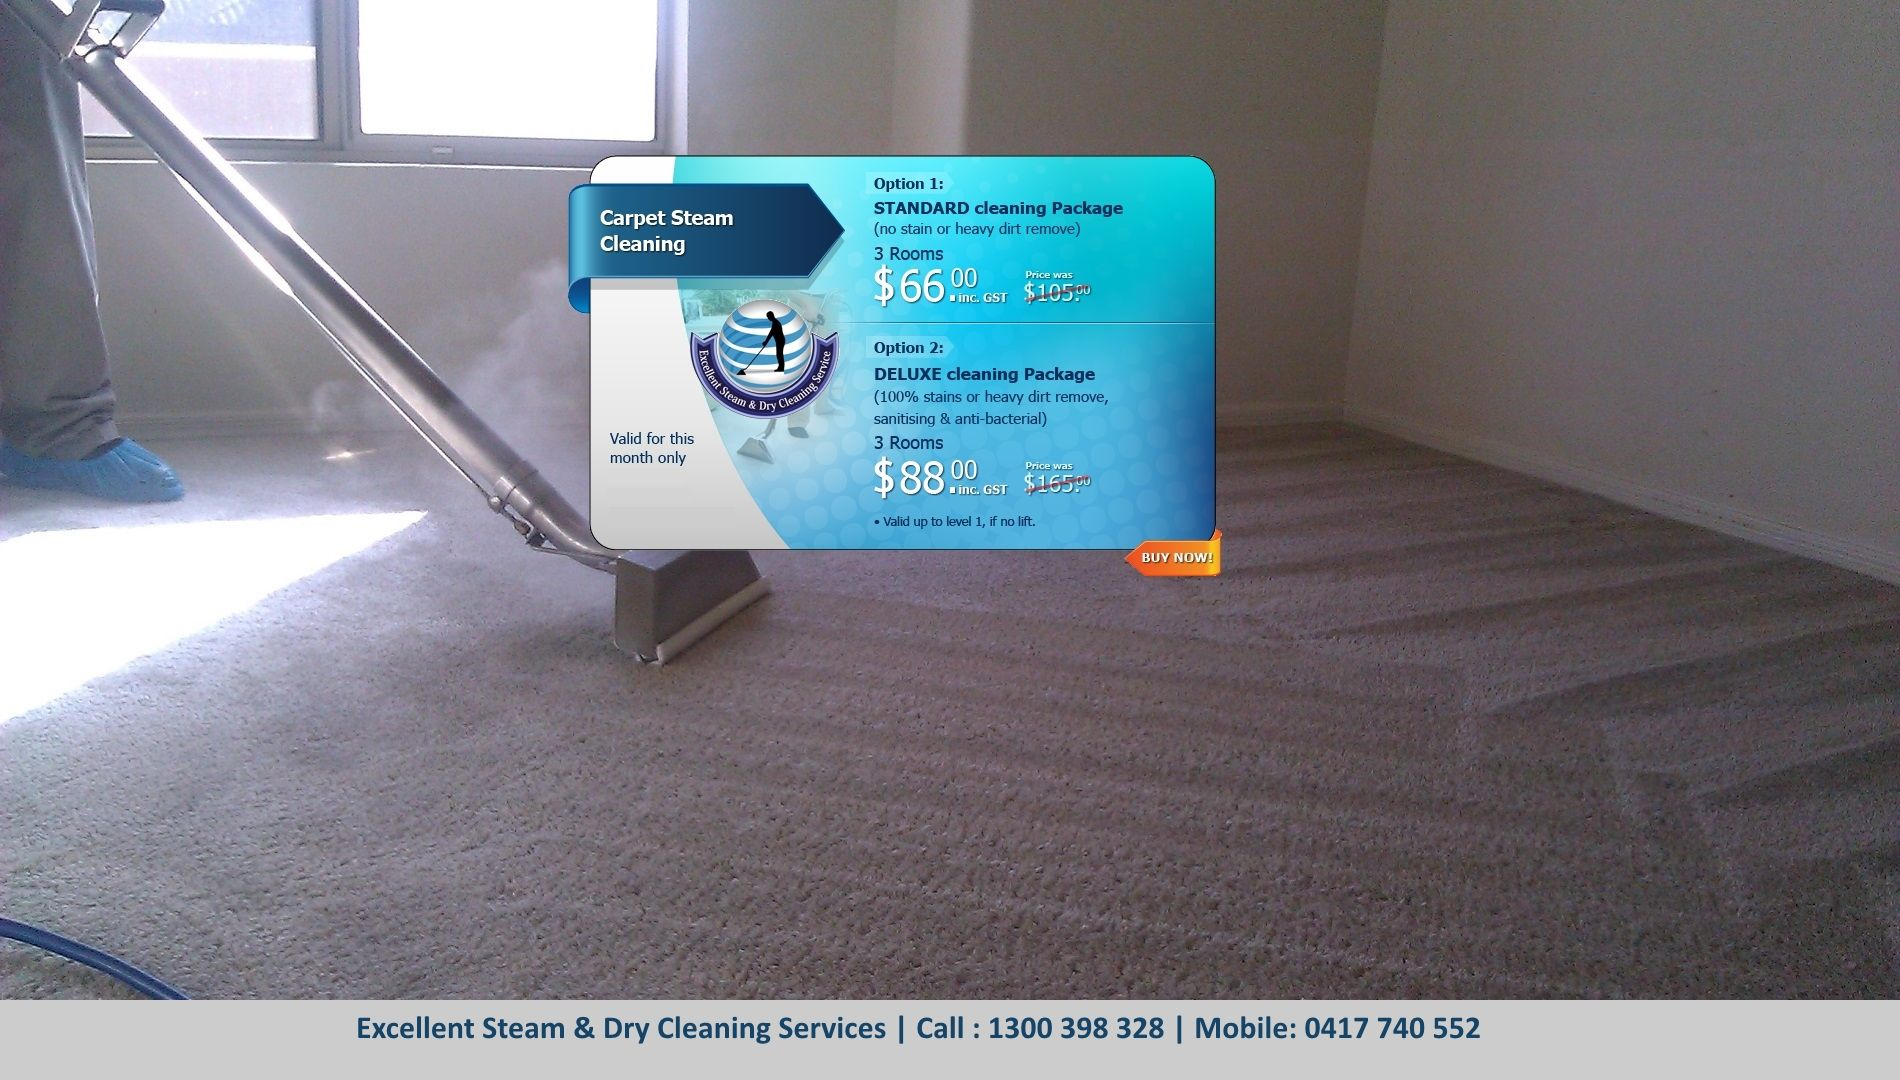 Carpet Steam and Dry Cleaning | Call: 1300 398 328